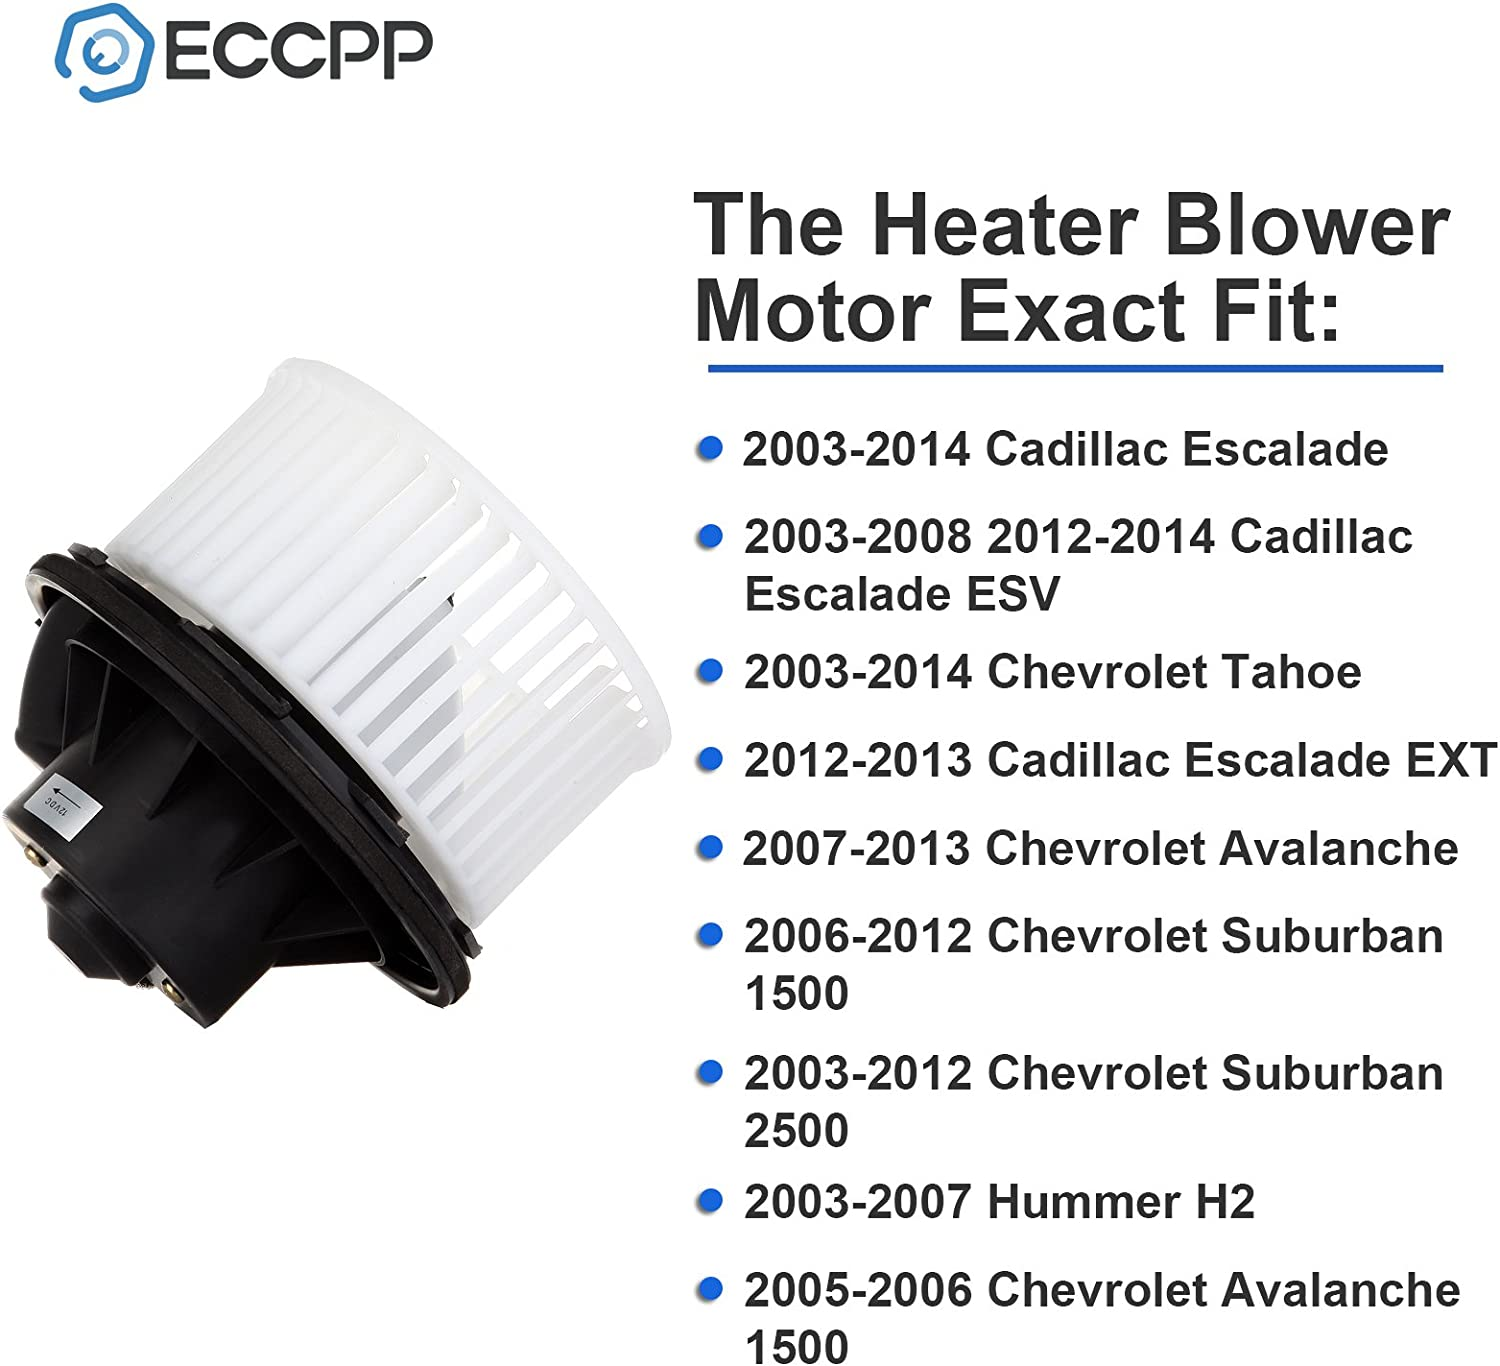 Amazon.com: HVAC Plastic Heater Blower Motor ABS w/Fan Cage ECCPP fit for  2003-2014 for Cadillac Escalade /2003-2008 2012-2014 for Cadillac Escalade  ESV /2003-2014 for Chevrolet Tahoe: AutomotiveAmazon.com